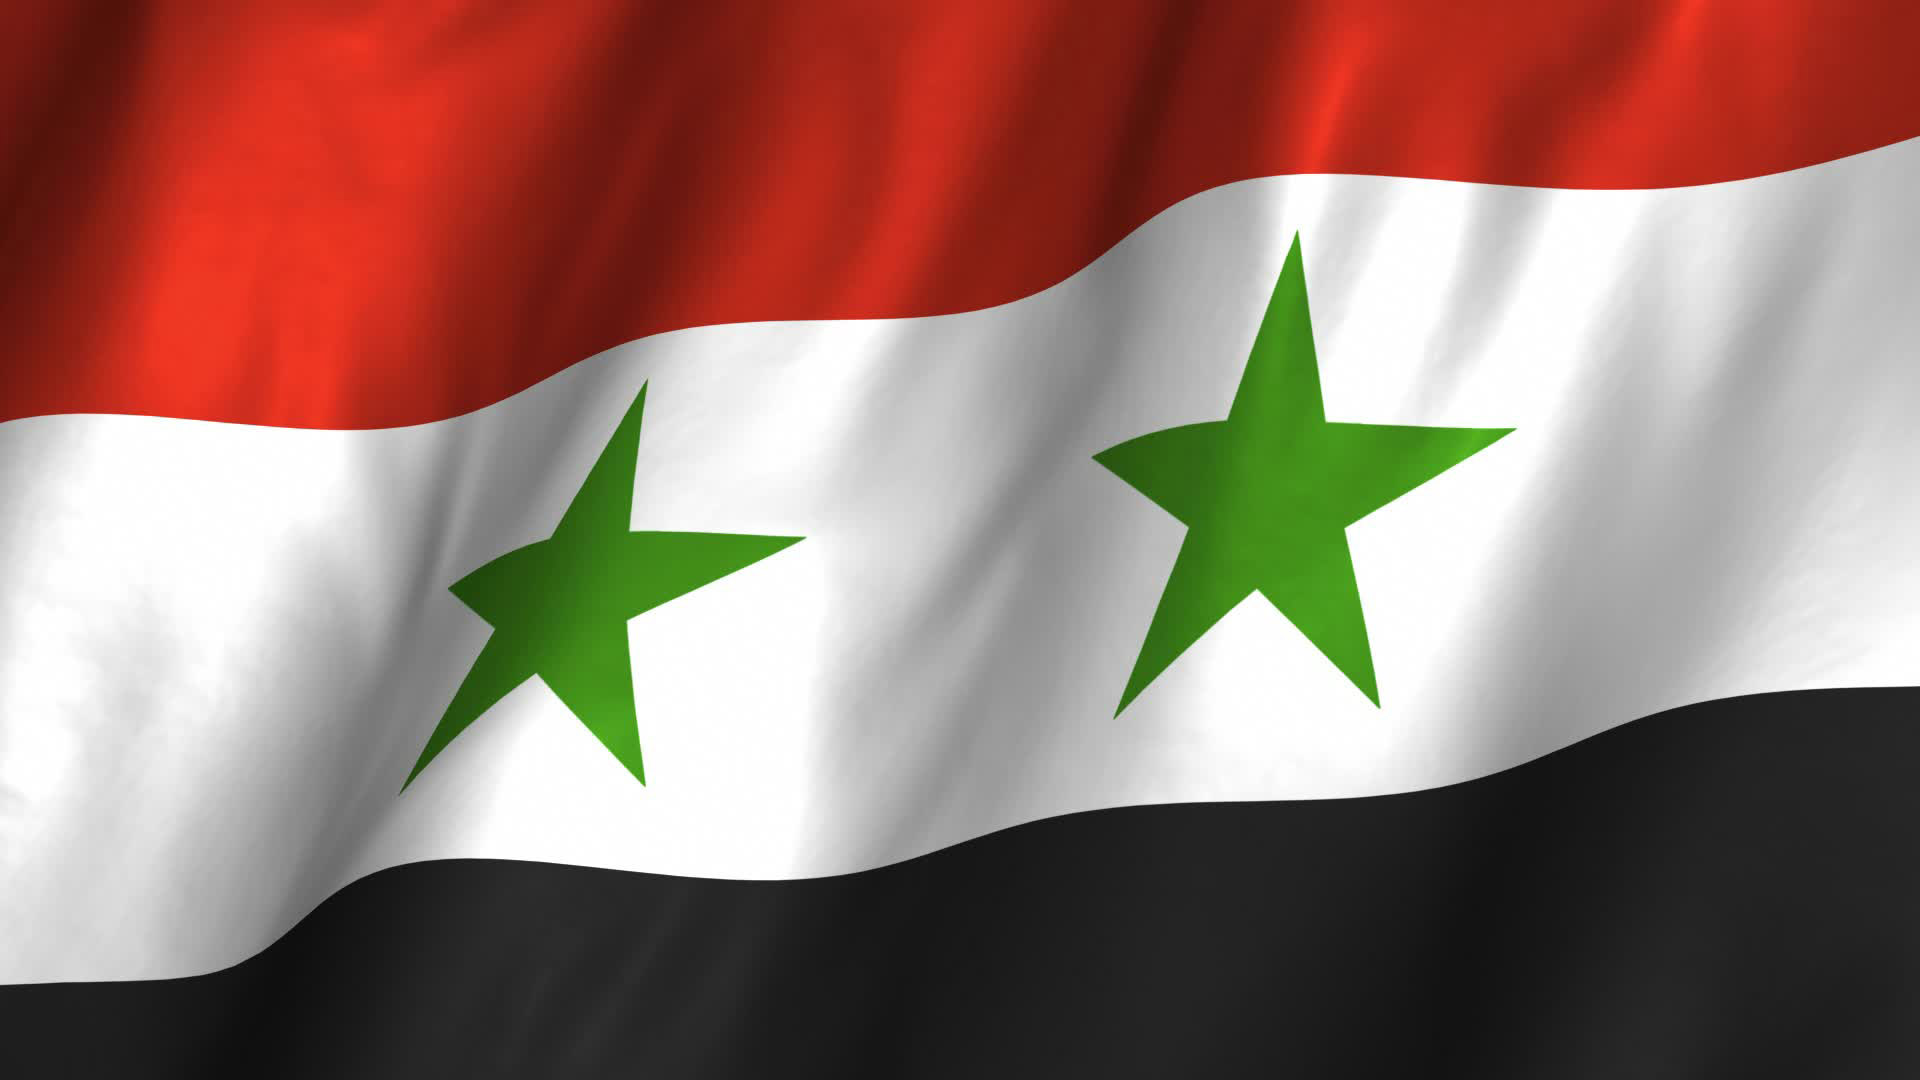 Syria Flag Wallpaper The Hat of Foil 1920x1080